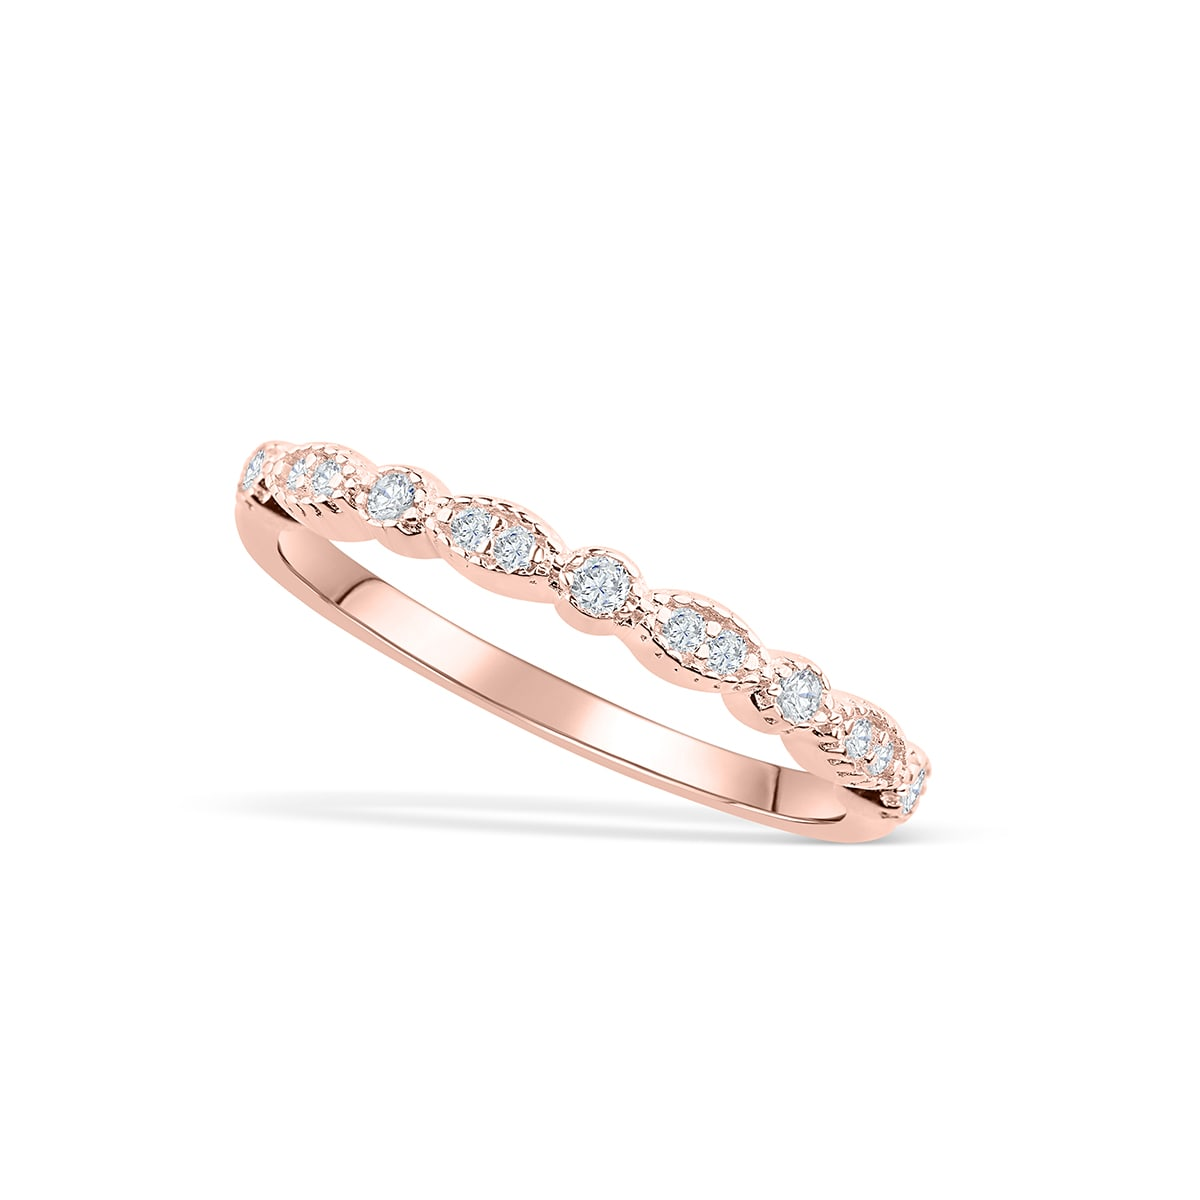 0746e61754a1f Rose Gold Vintage Wedding Band | Stackable Antique Ring - Modern ...